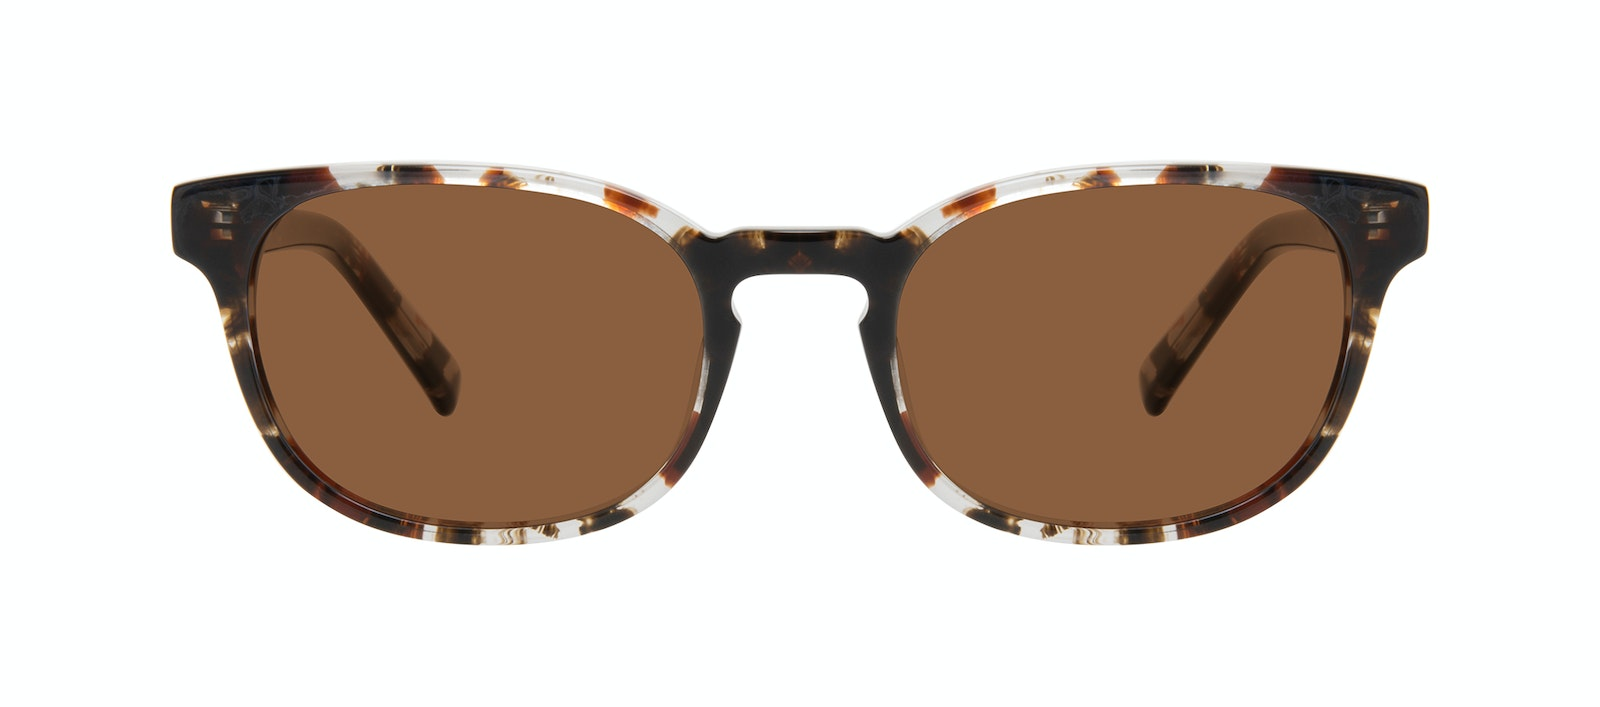 Affordable Fashion Glasses Square Sunglasses Men Essence Mocha Tort Front